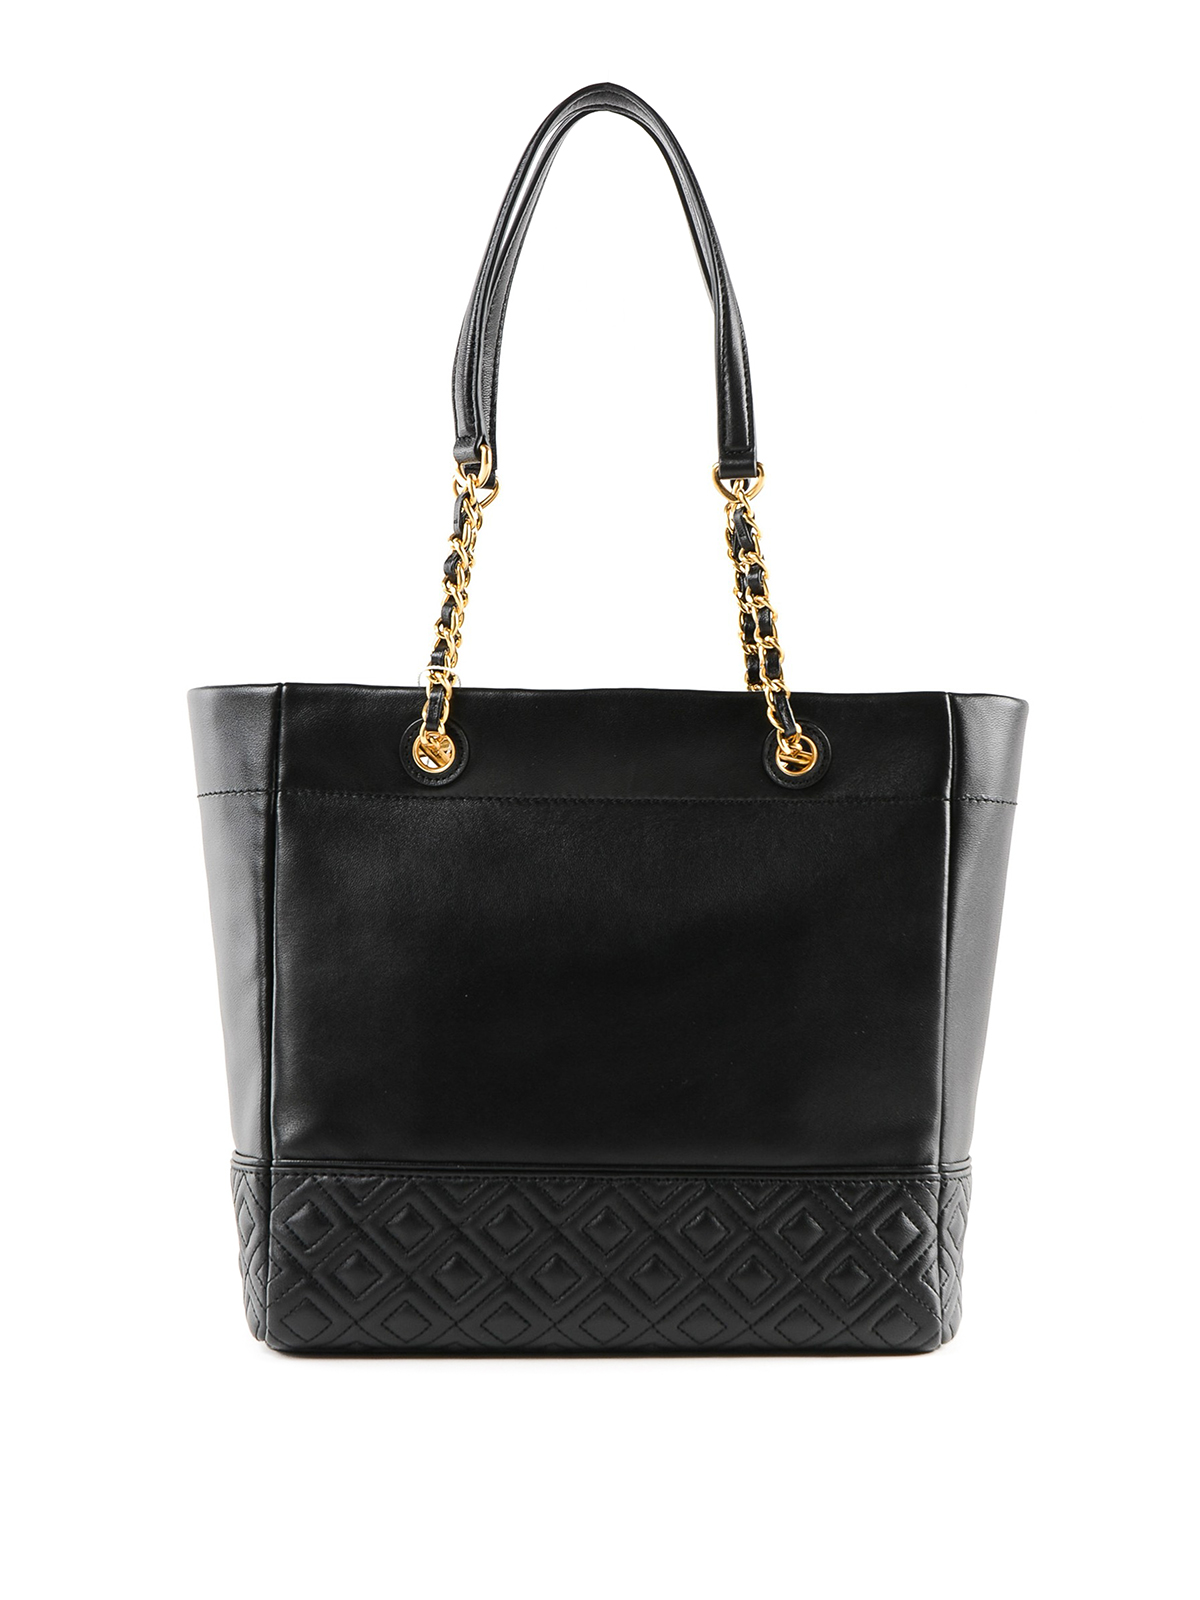 aecfe0bb3ac TORY BURCH  totes bags online - Fleming golden chain leather tote bag